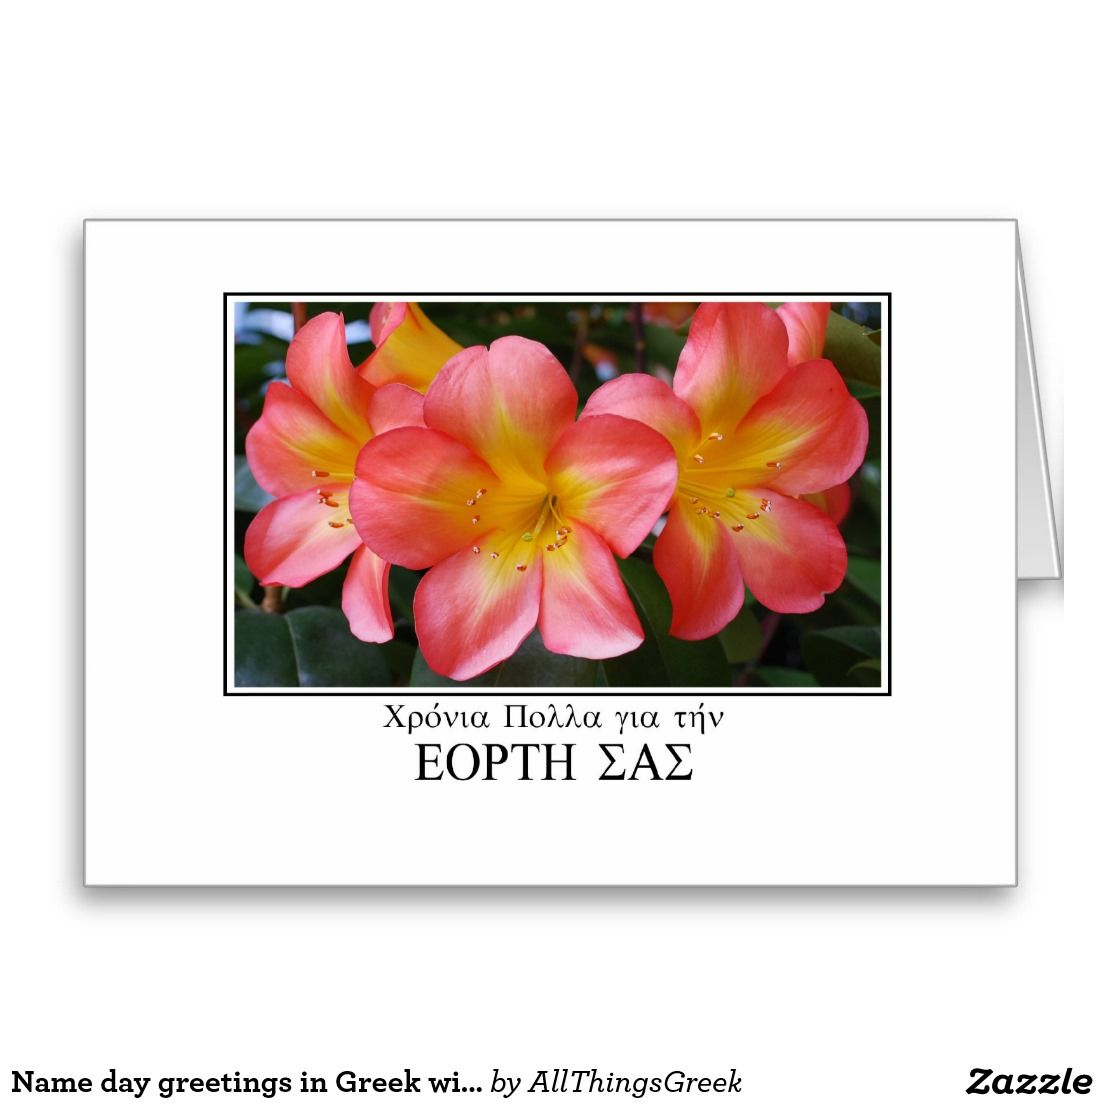 Name Day Greetings In Greek With Clivia Card All Things Greek